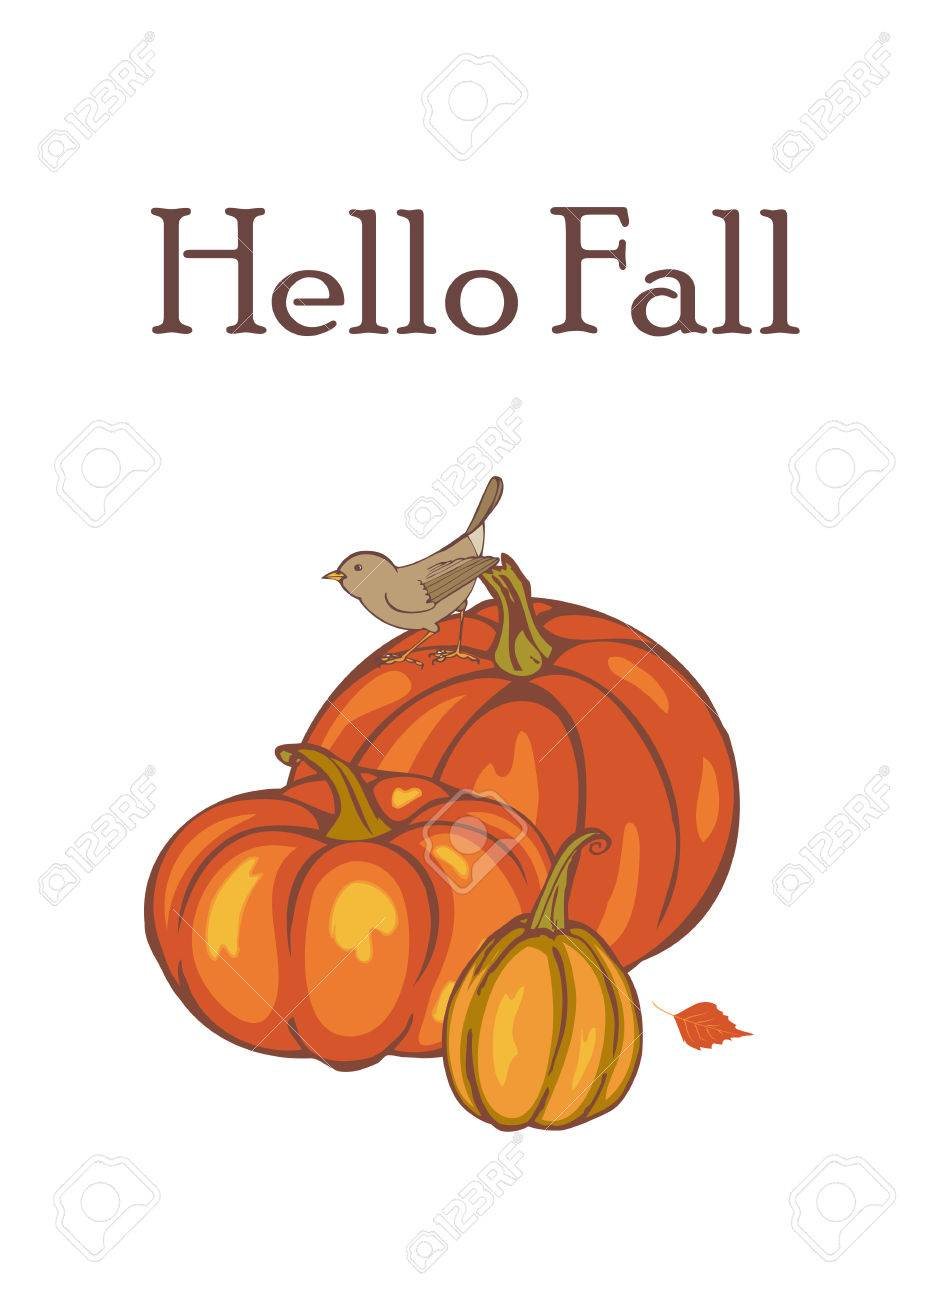 High Quality Hello Fall, Autumn Pumpkin Harvest, Template For Advertising, Greeting Cards,  Invitations,